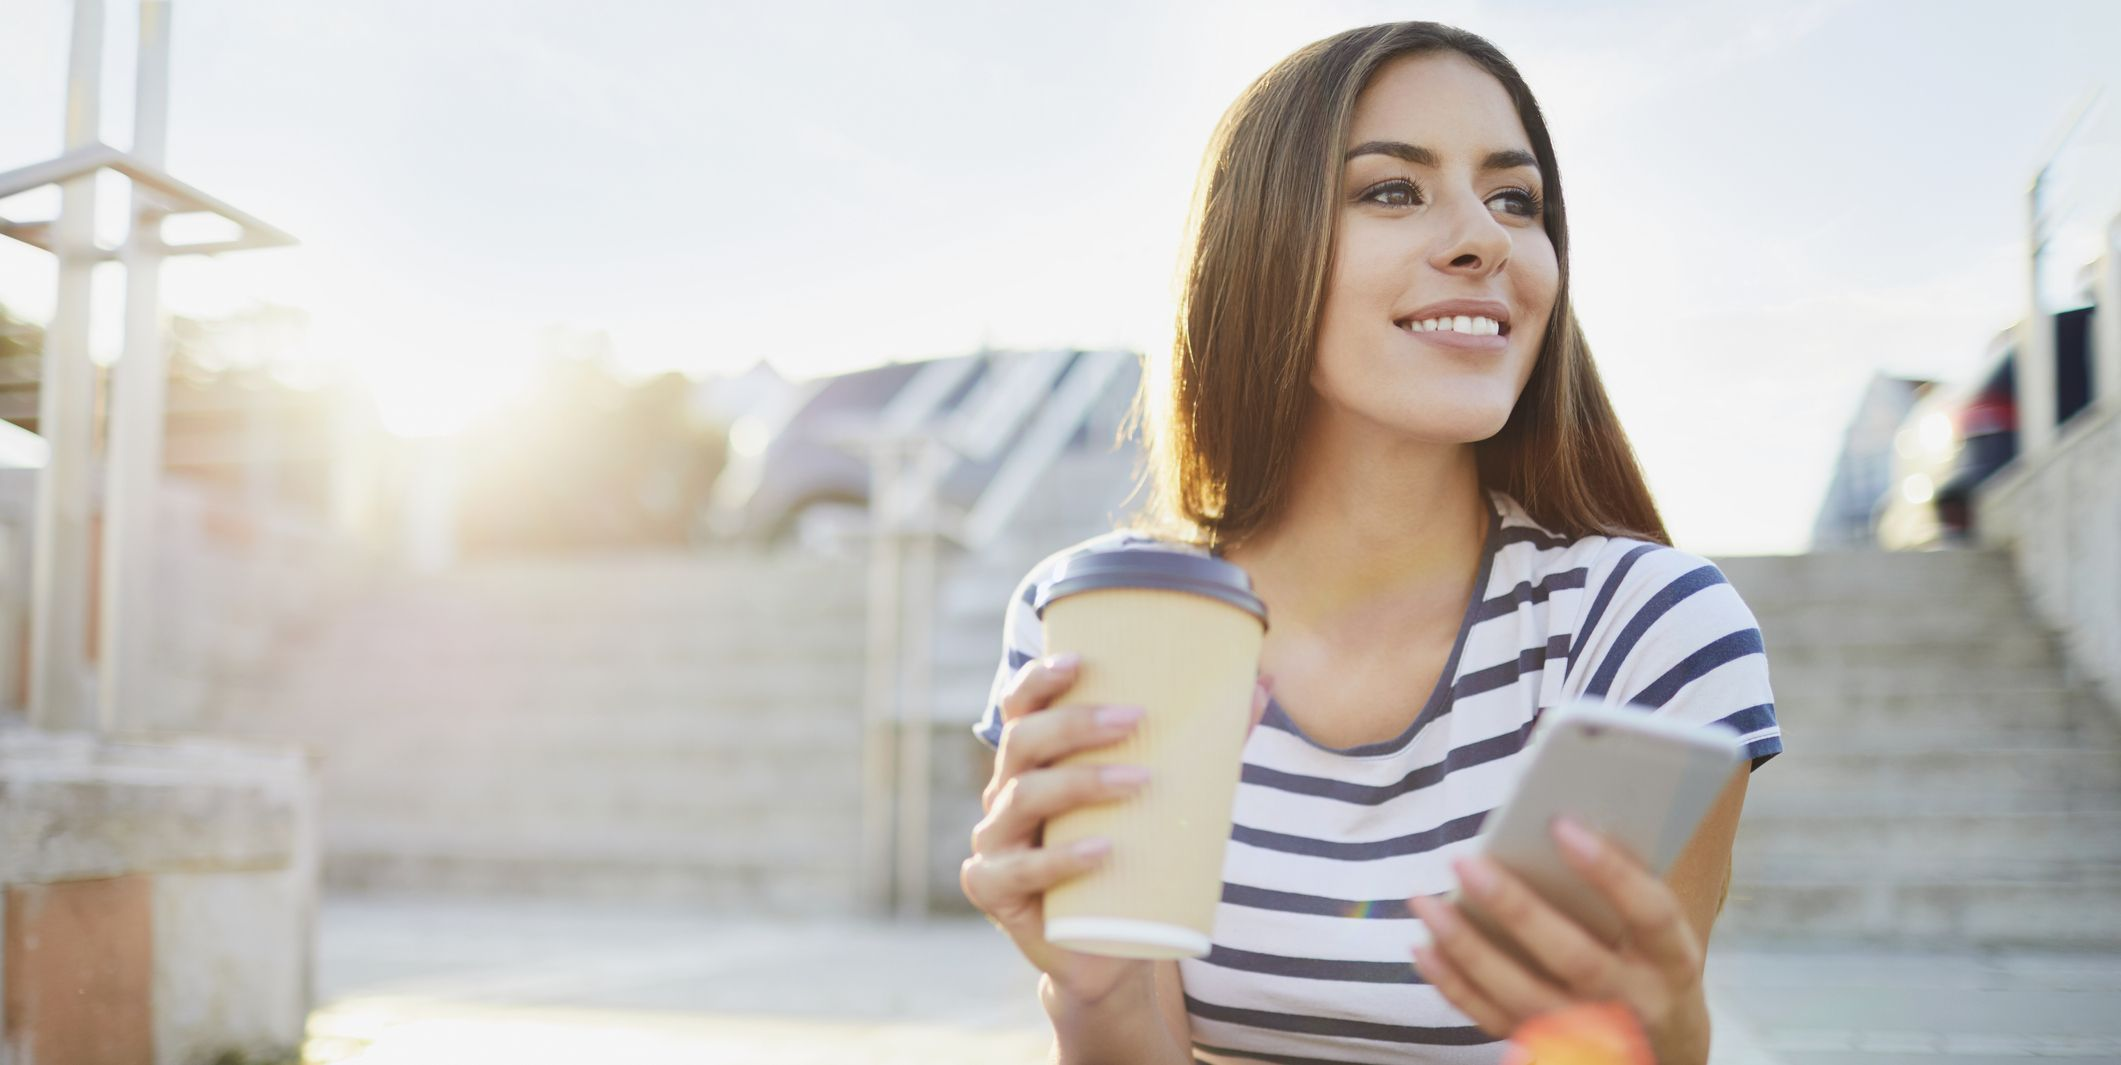 Young woman sitting on stairs in the city with phone and coffee